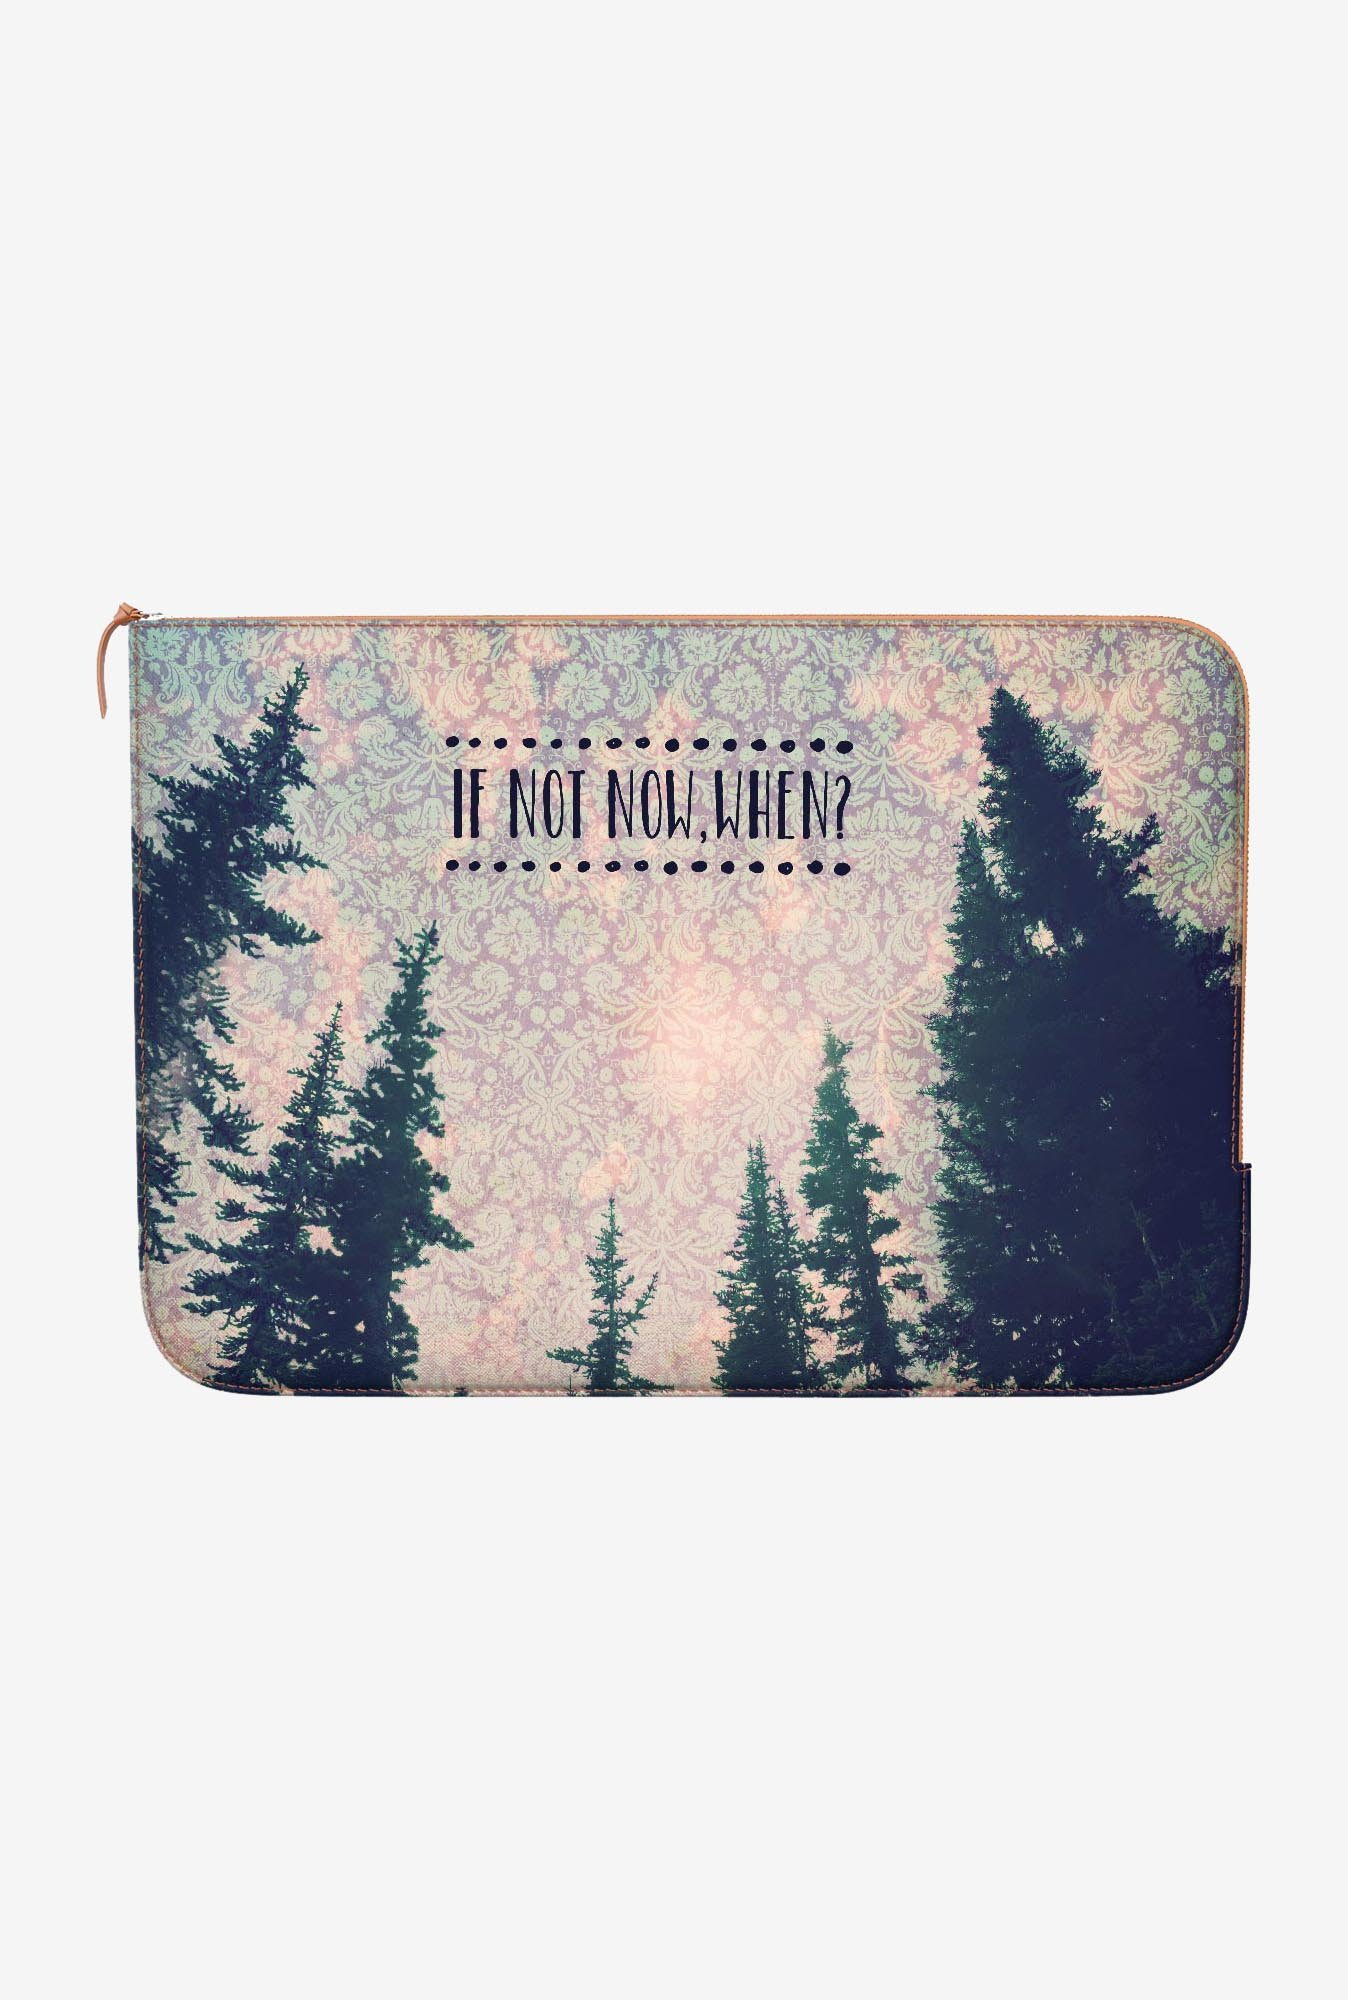 DailyObjects If Not Now MacBook 12 Zippered Sleeve